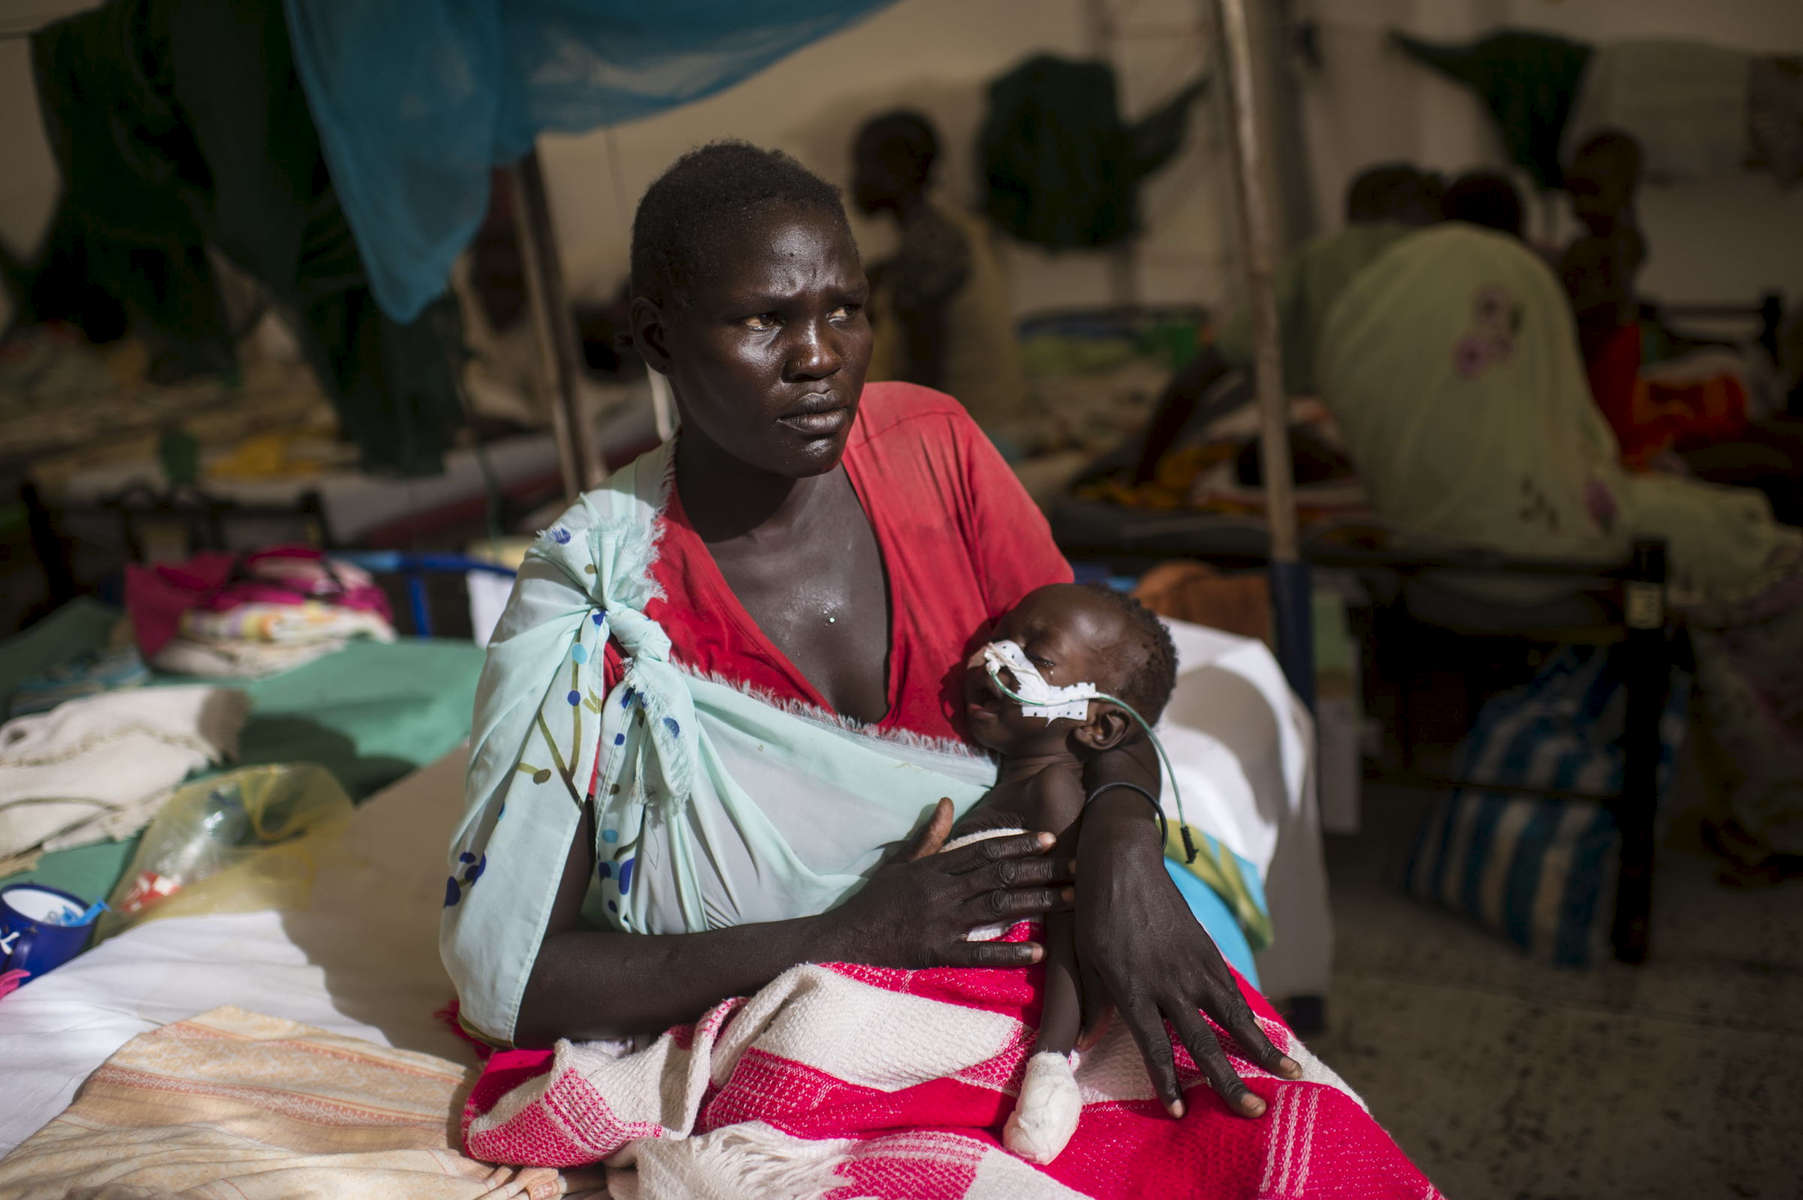 Nyakar Unwa, 34, holds her severely malnourished daughter, Monday, 6 months, who is being treated for malnutrition and additional complications at a tent hospital run by Doctors Without Borders at the base of the United Nations Mission in South Sudan base in Malakal, in the Upper Nile region, South Sudan, May 11, 2014. Nyakar, who has seven children, was displaced from her village of Owach during the civil war, and her family lost everything: their crops, cattle, and home.  They were forced to sell their clothes for food.  One million Southern Sudanese have been displaced from their homes since the start of the civil war in December 2013, pitting ethnic Nu'er against Dinka.  Because of continued fighting, many have been unable to plant crops to harvest the next season, and aid organizations have been unable to preposition food in anticipation of the rainy season.  According to the United Nations official coordinating humanitarian aid in South Sudan, if the civil war doesn't stop, and the country does not receive international aid, South Sudan will face the worst starvation in Africa since the 1980s, when hundreds of thousands of people died in Ethiopia's famine. (Credit: Lynsey Addario for The New York Times)